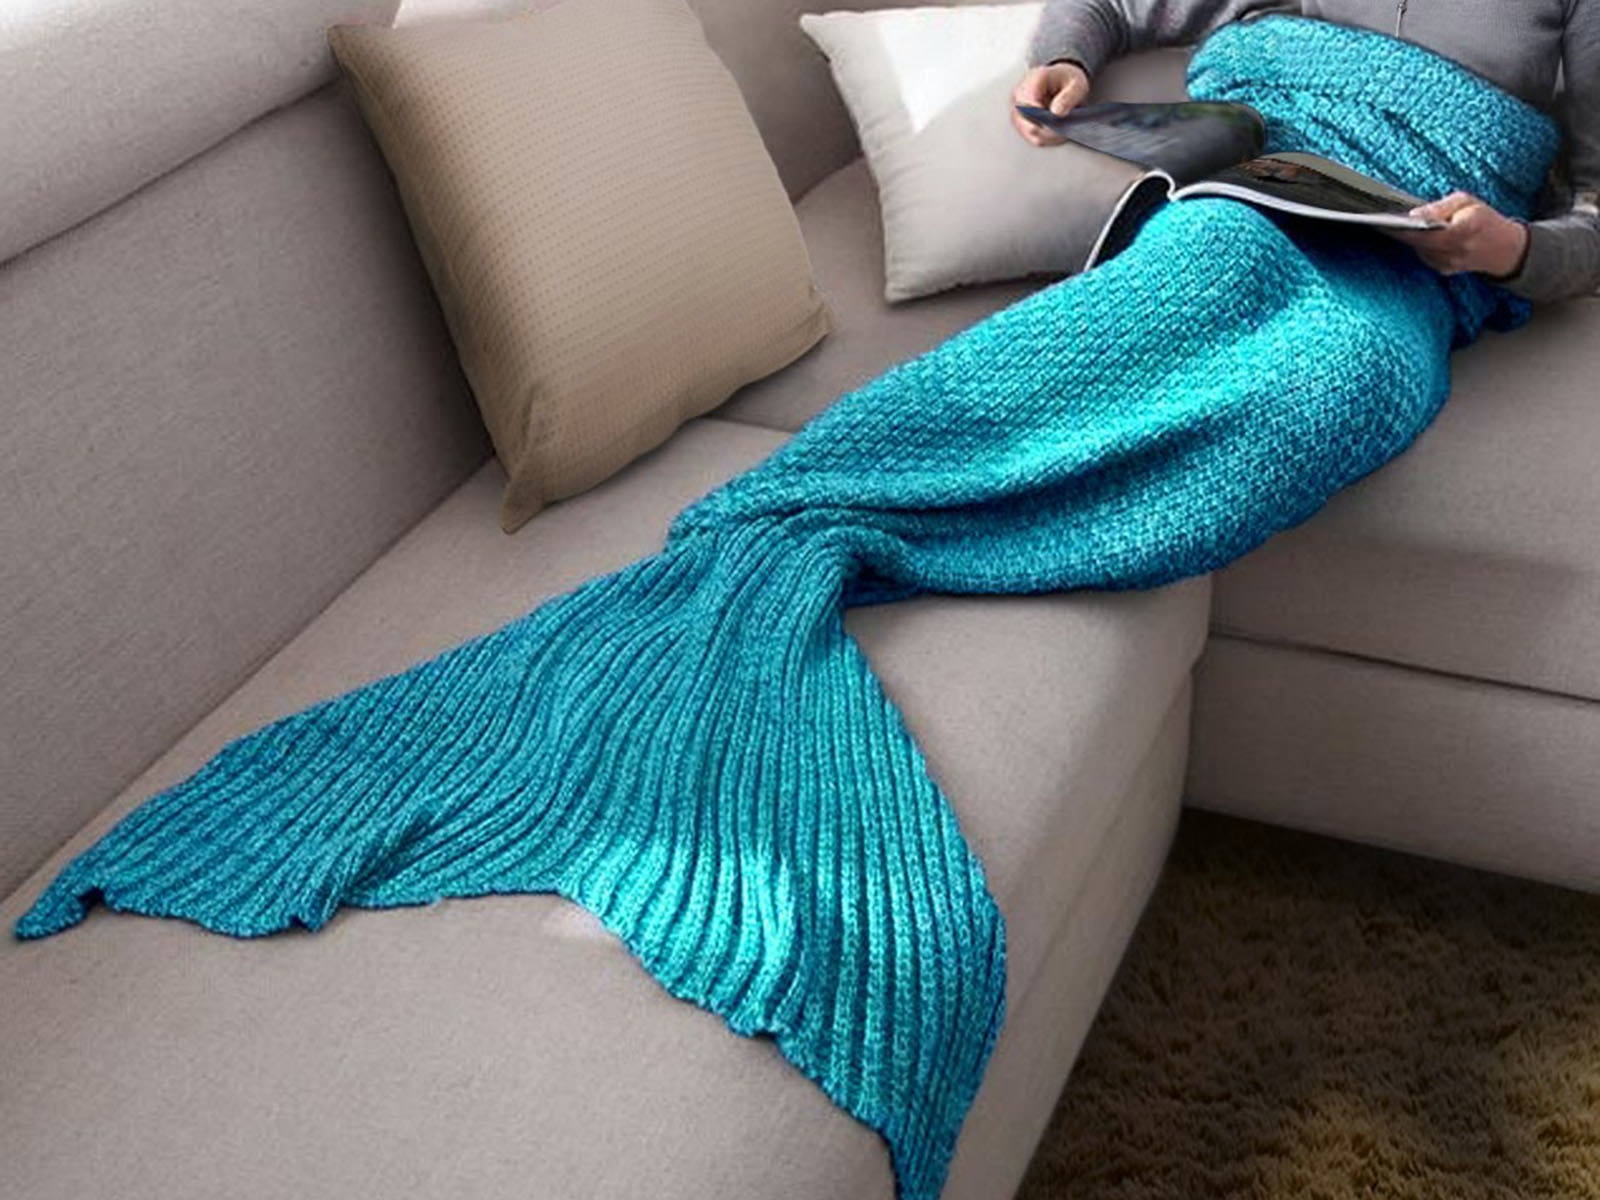 This blanket that lets you live out your Disney princess fantasies